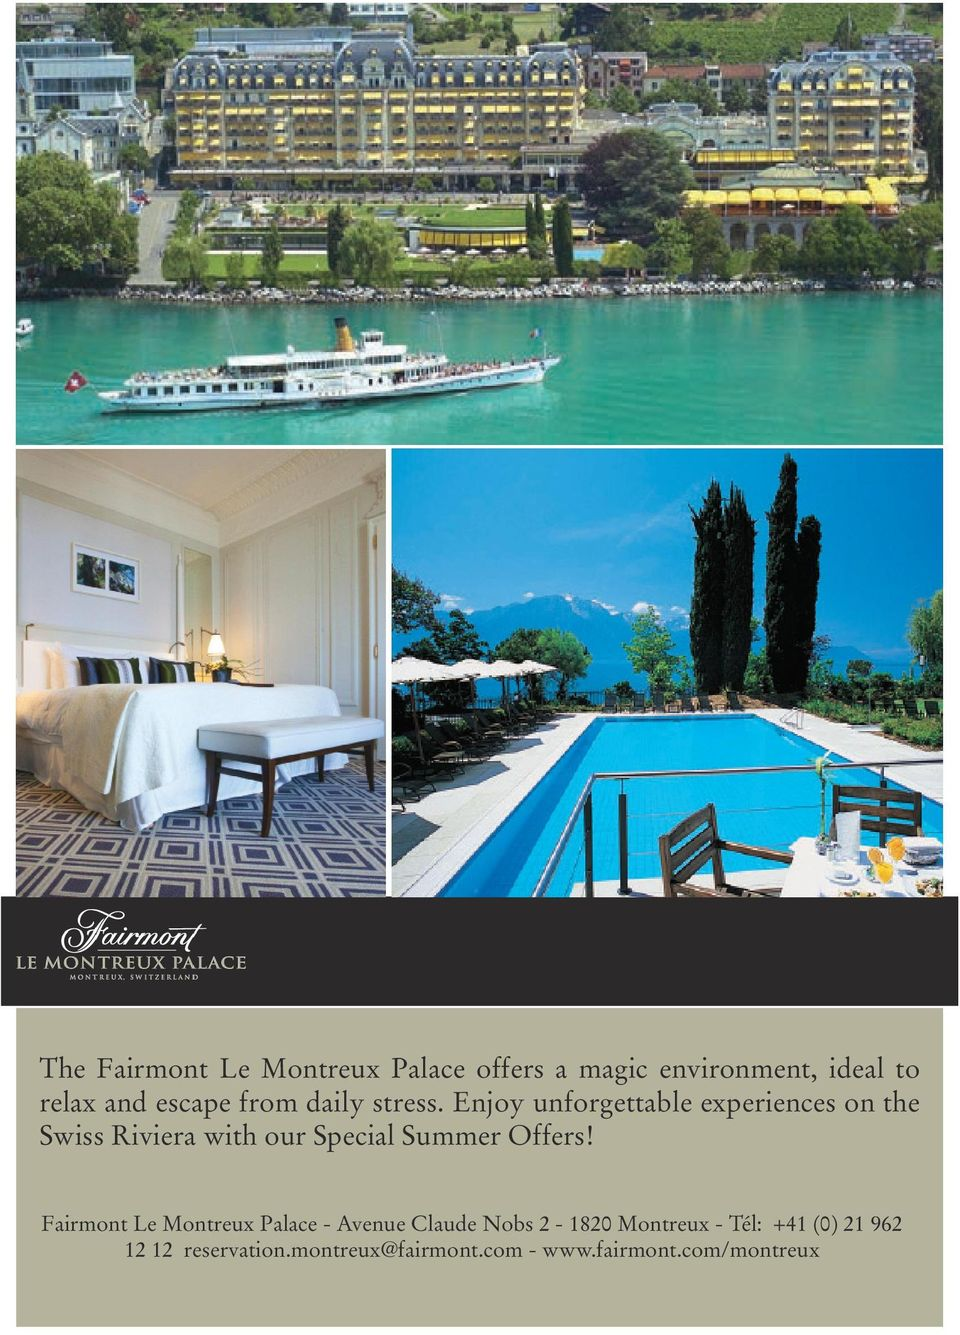 Enjoy unforgettable experiences on the Swiss Riviera with our Special Summer Offers!